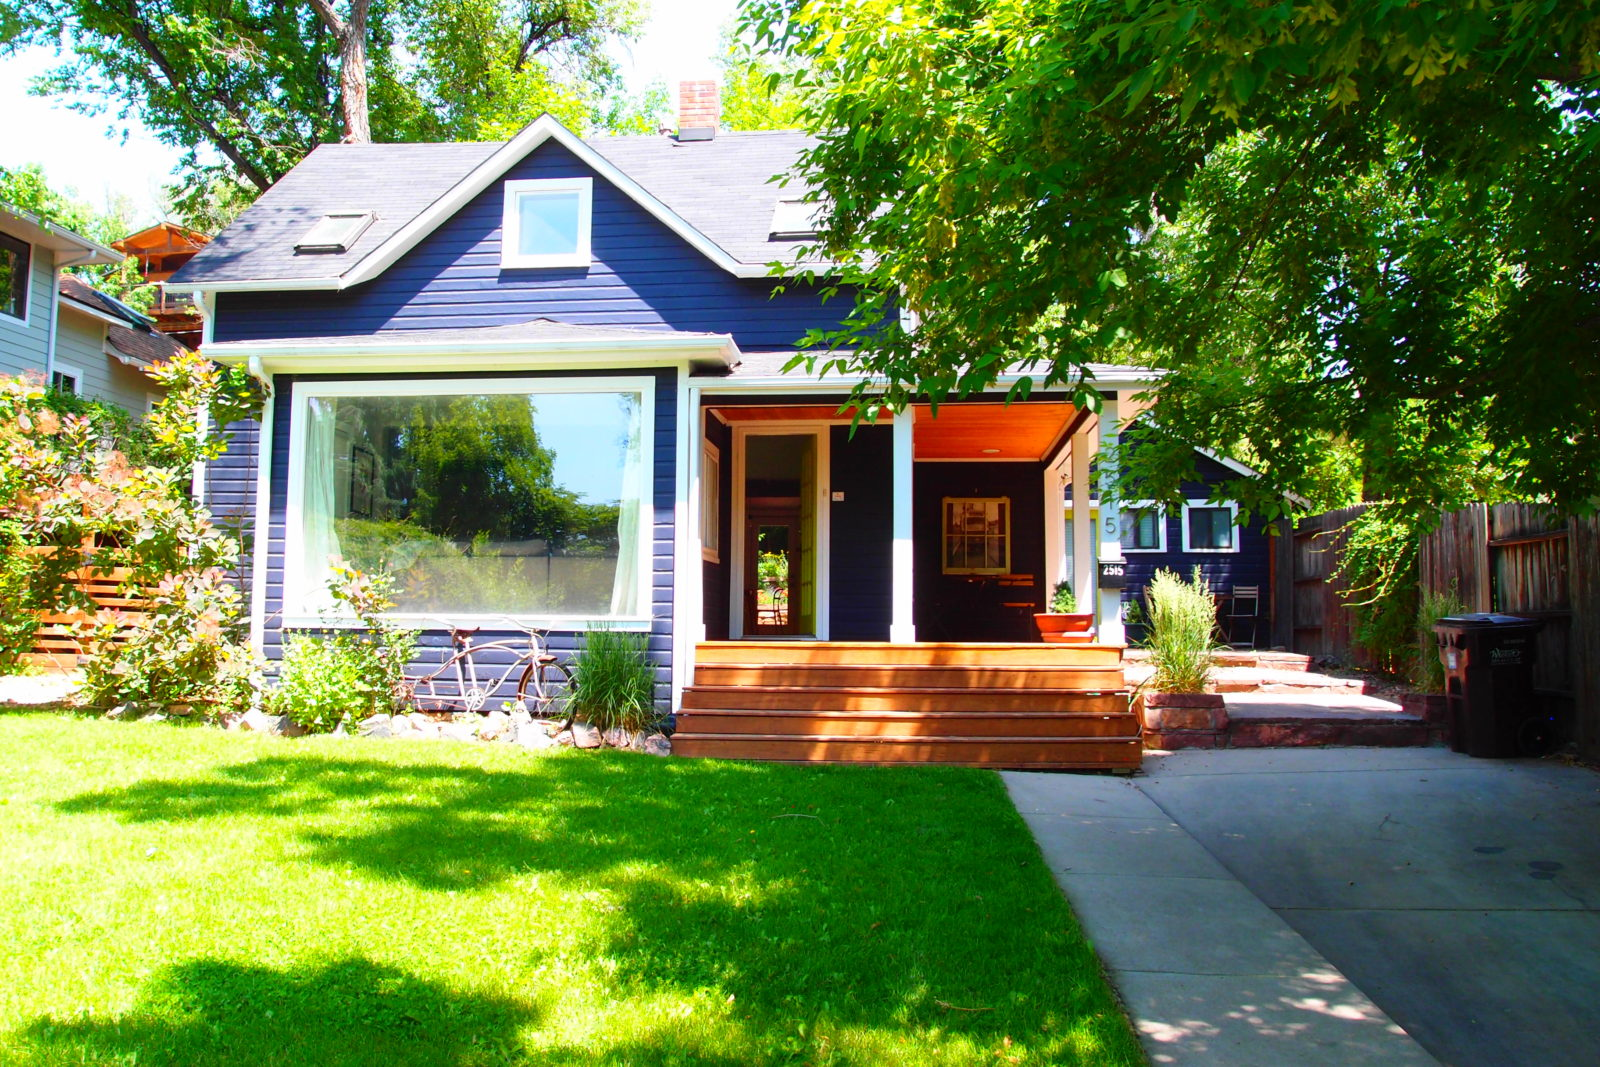 2515 Bluff Street - UNDER CONTRACT